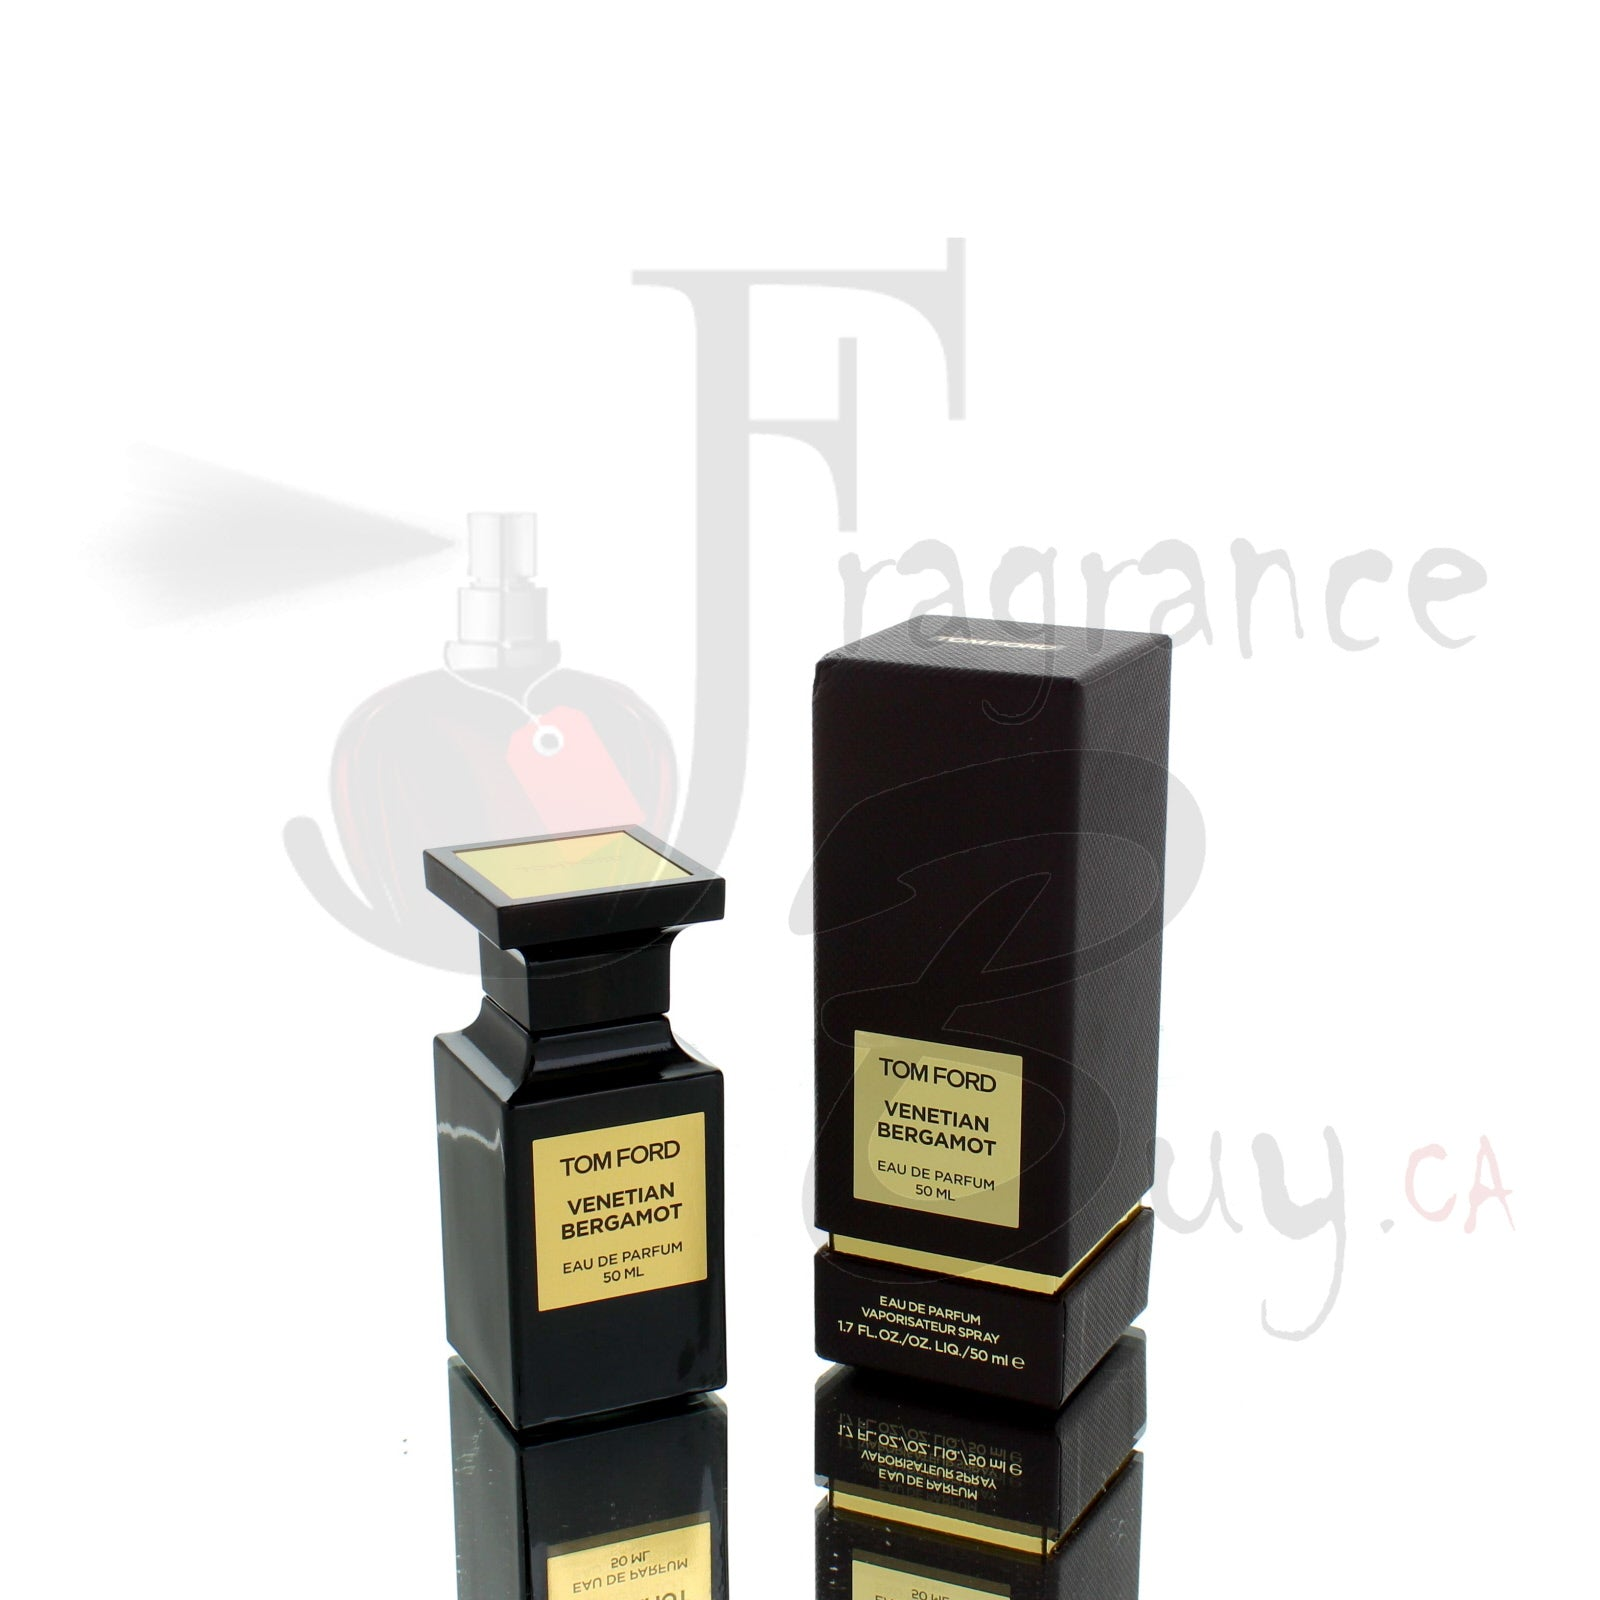 Tom Ford Venetian Bergamot For Man/Woman